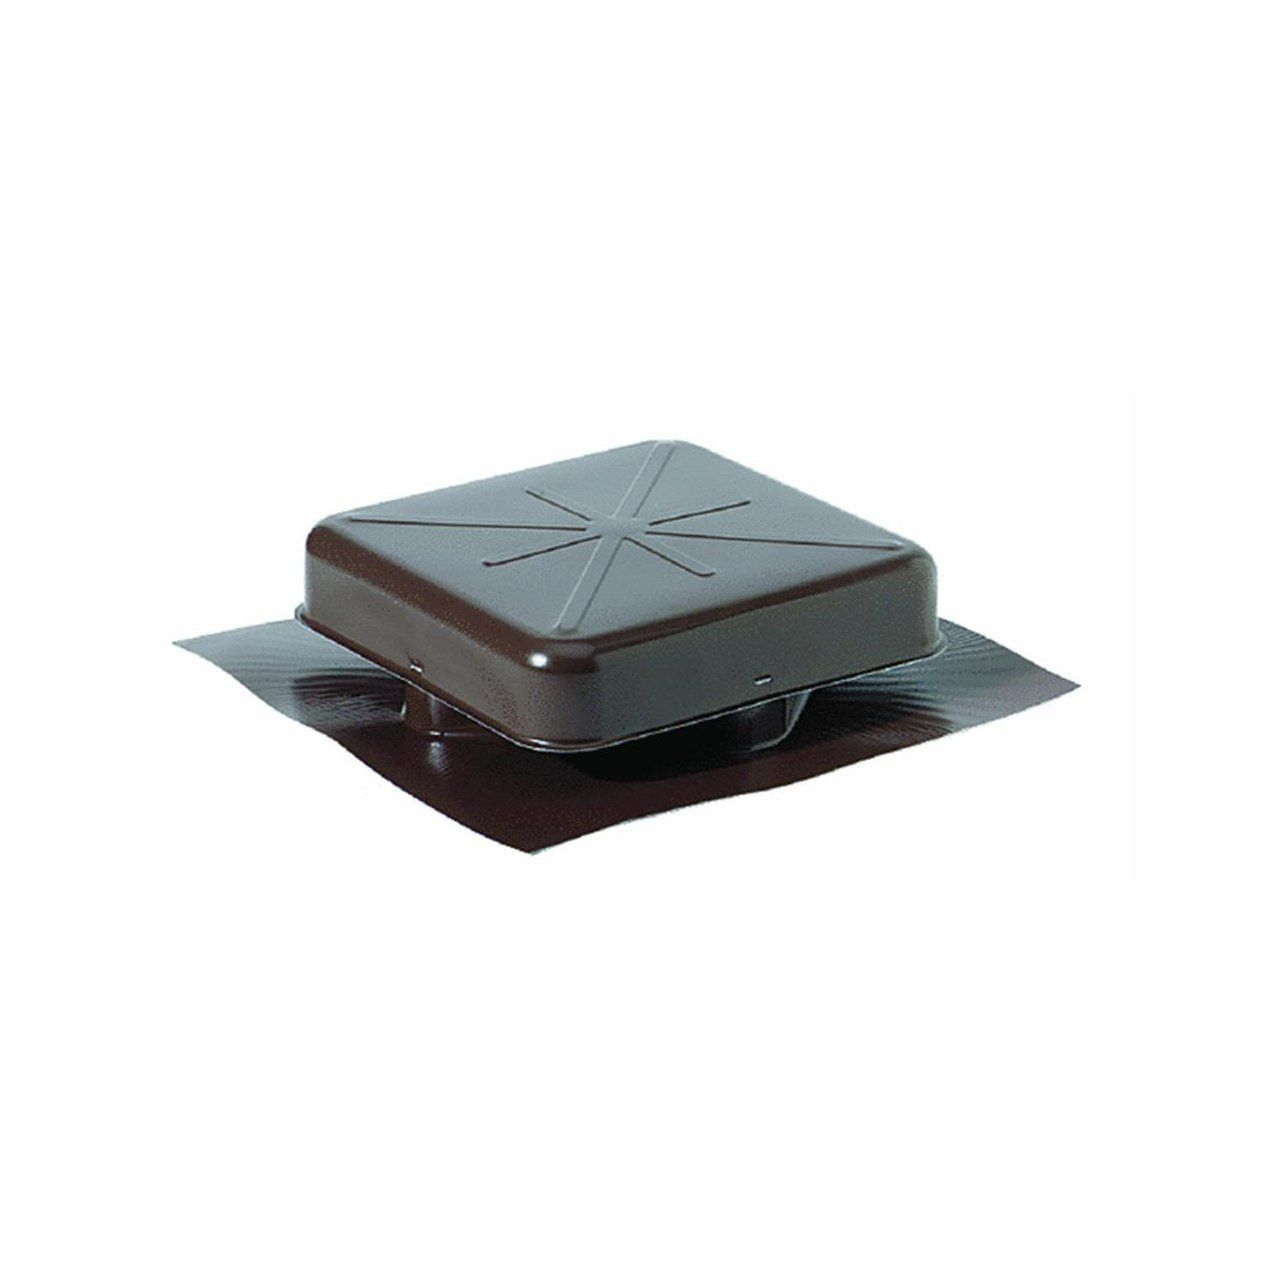 Airhawk Aluminum Square Roof Vent Want To Know More Click On The Image Roof Vents Metal Roof Vents Pitched Roof